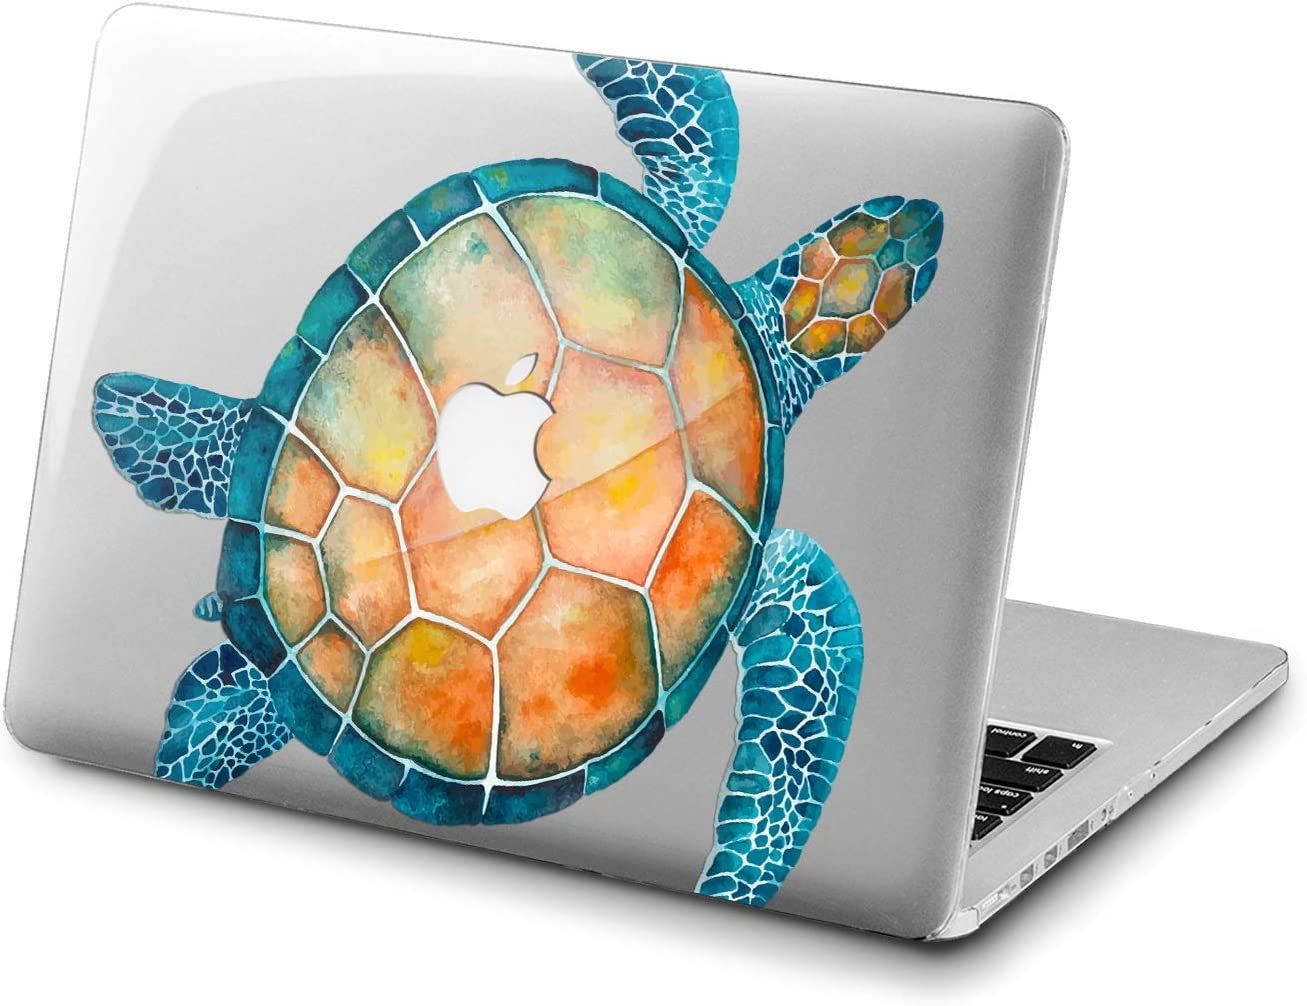 Lex Altern Clear Case for Apple MacBook Air 13 Mac Pro 15 inch Retina 12 11 2020 2019 2018 2017 2016 Girly Cute Watercolor Blue Cover Turtle Shell Ocean Design Animal Fish Plastic Women Sea Laptop